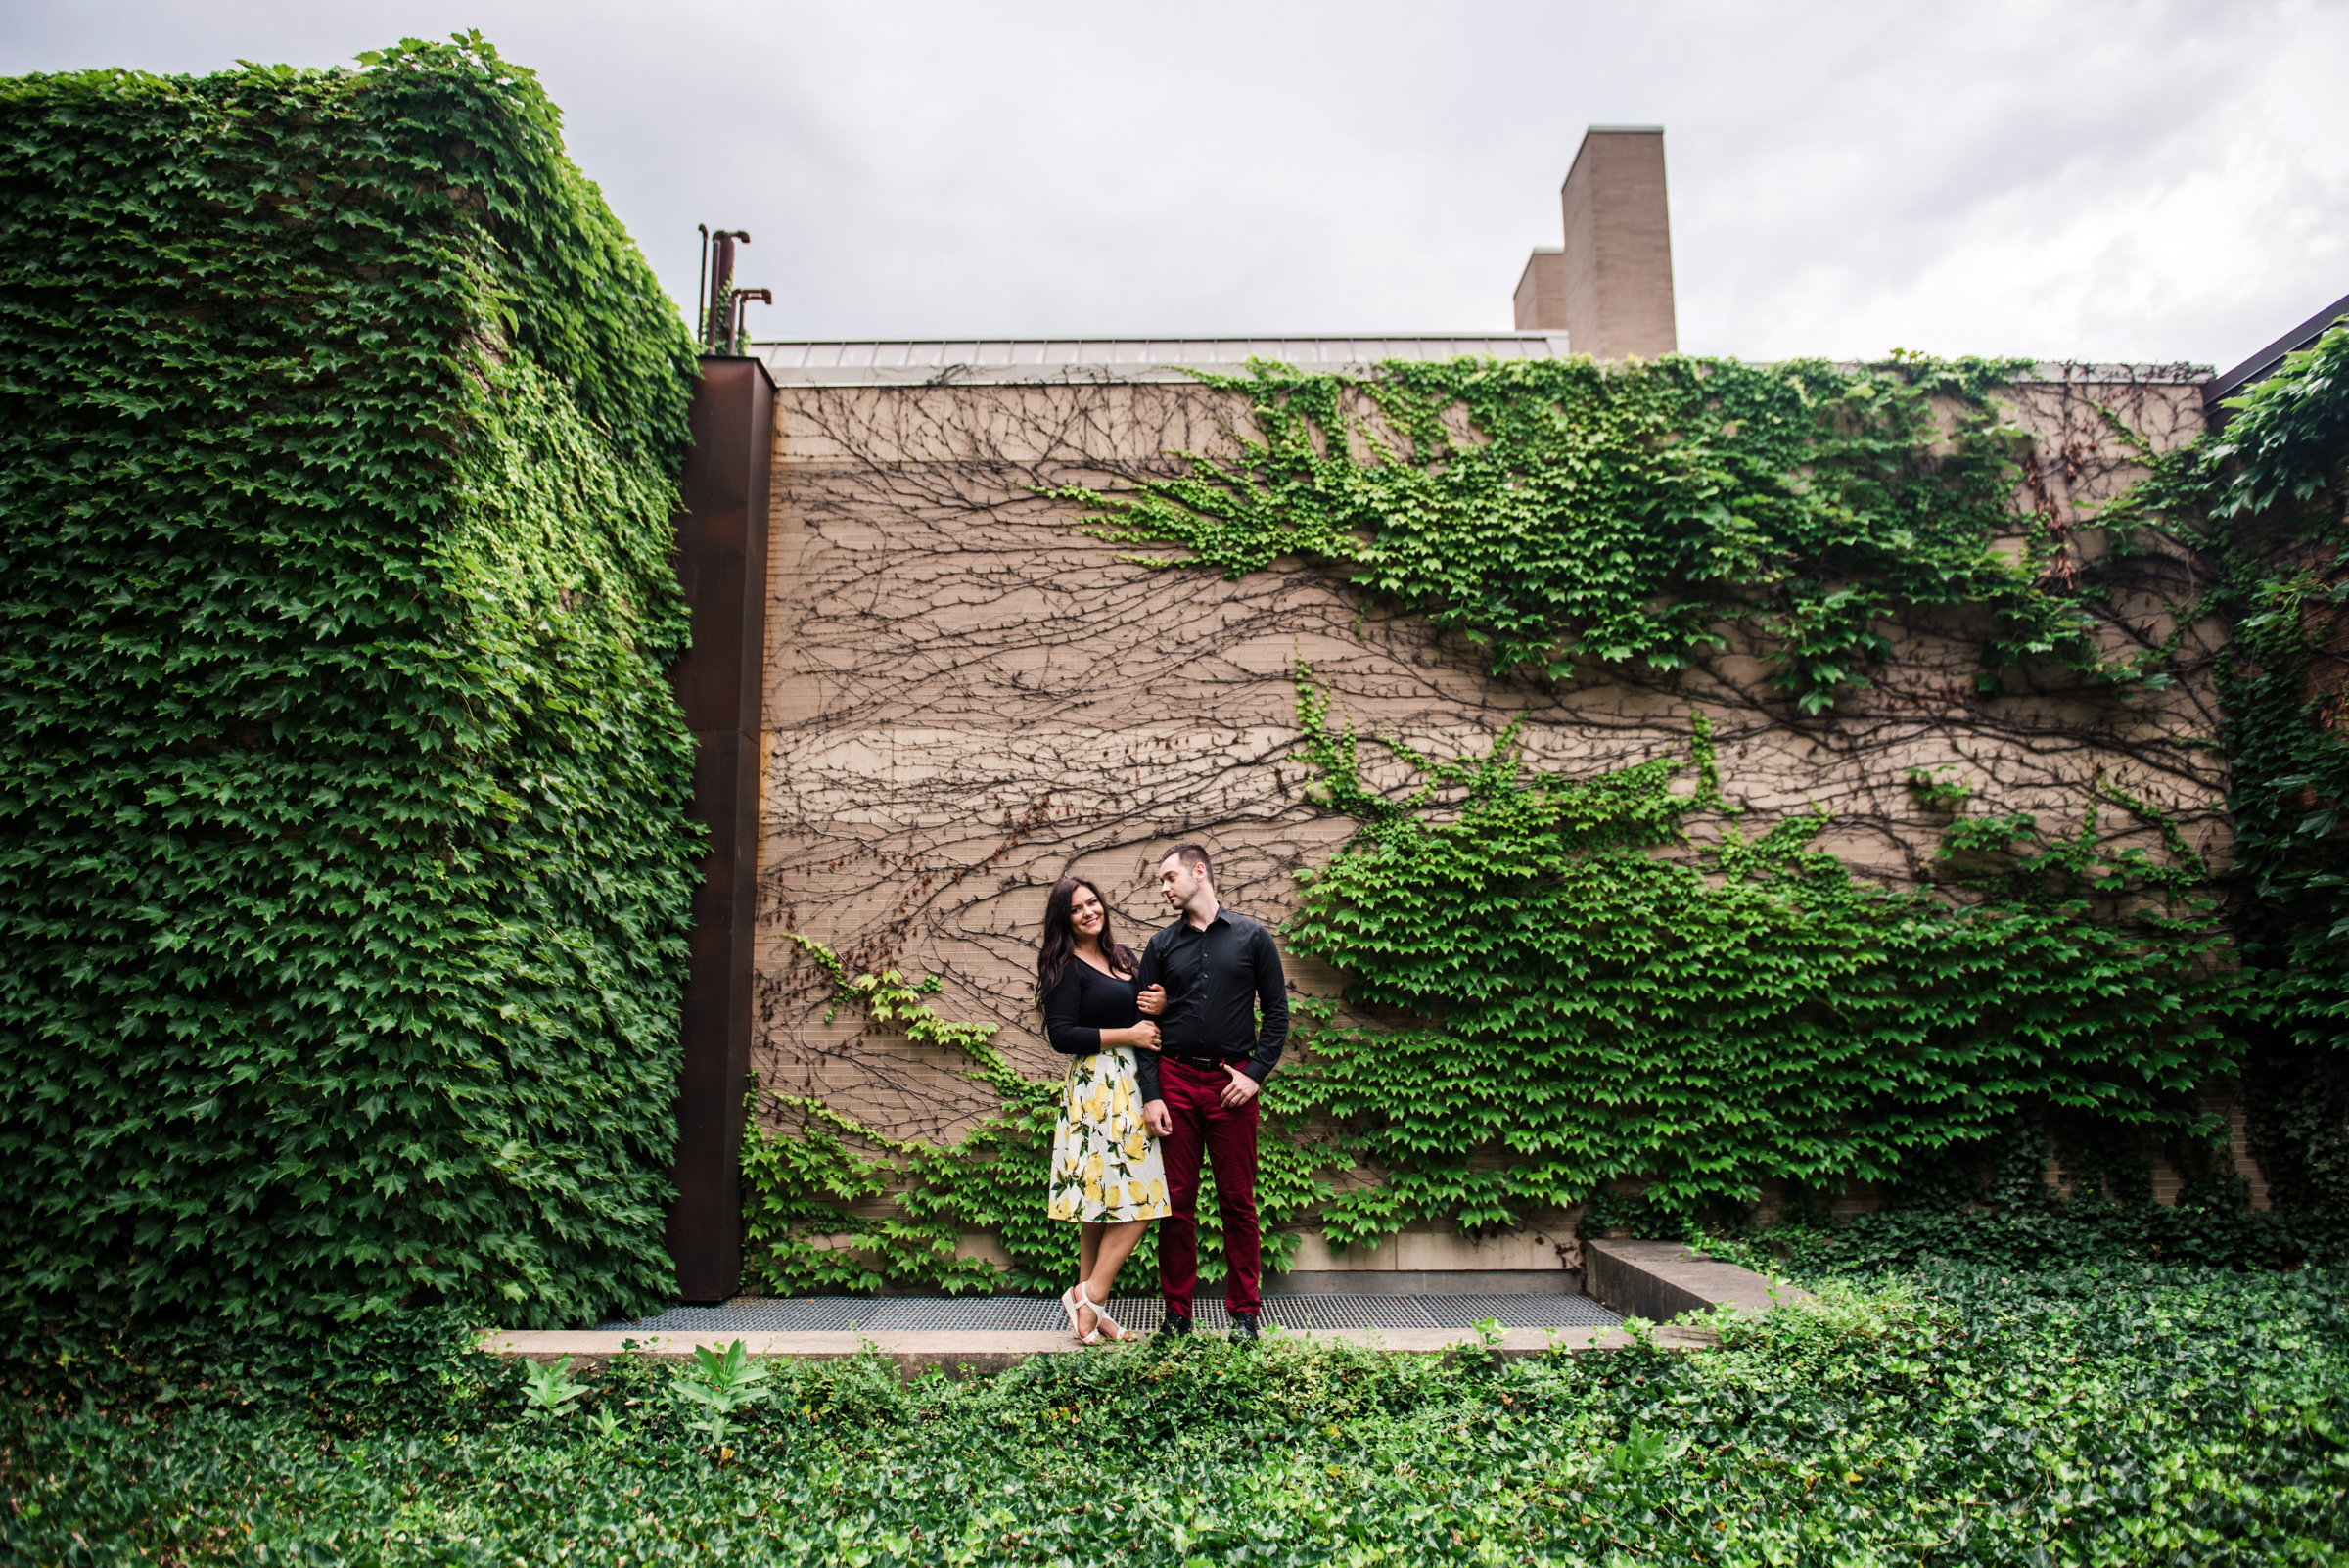 George_Eastman_House_Rochester_Engagement_Session_JILL_STUDIO_Rochester_NY_Photographer_DSC_6491.jpg